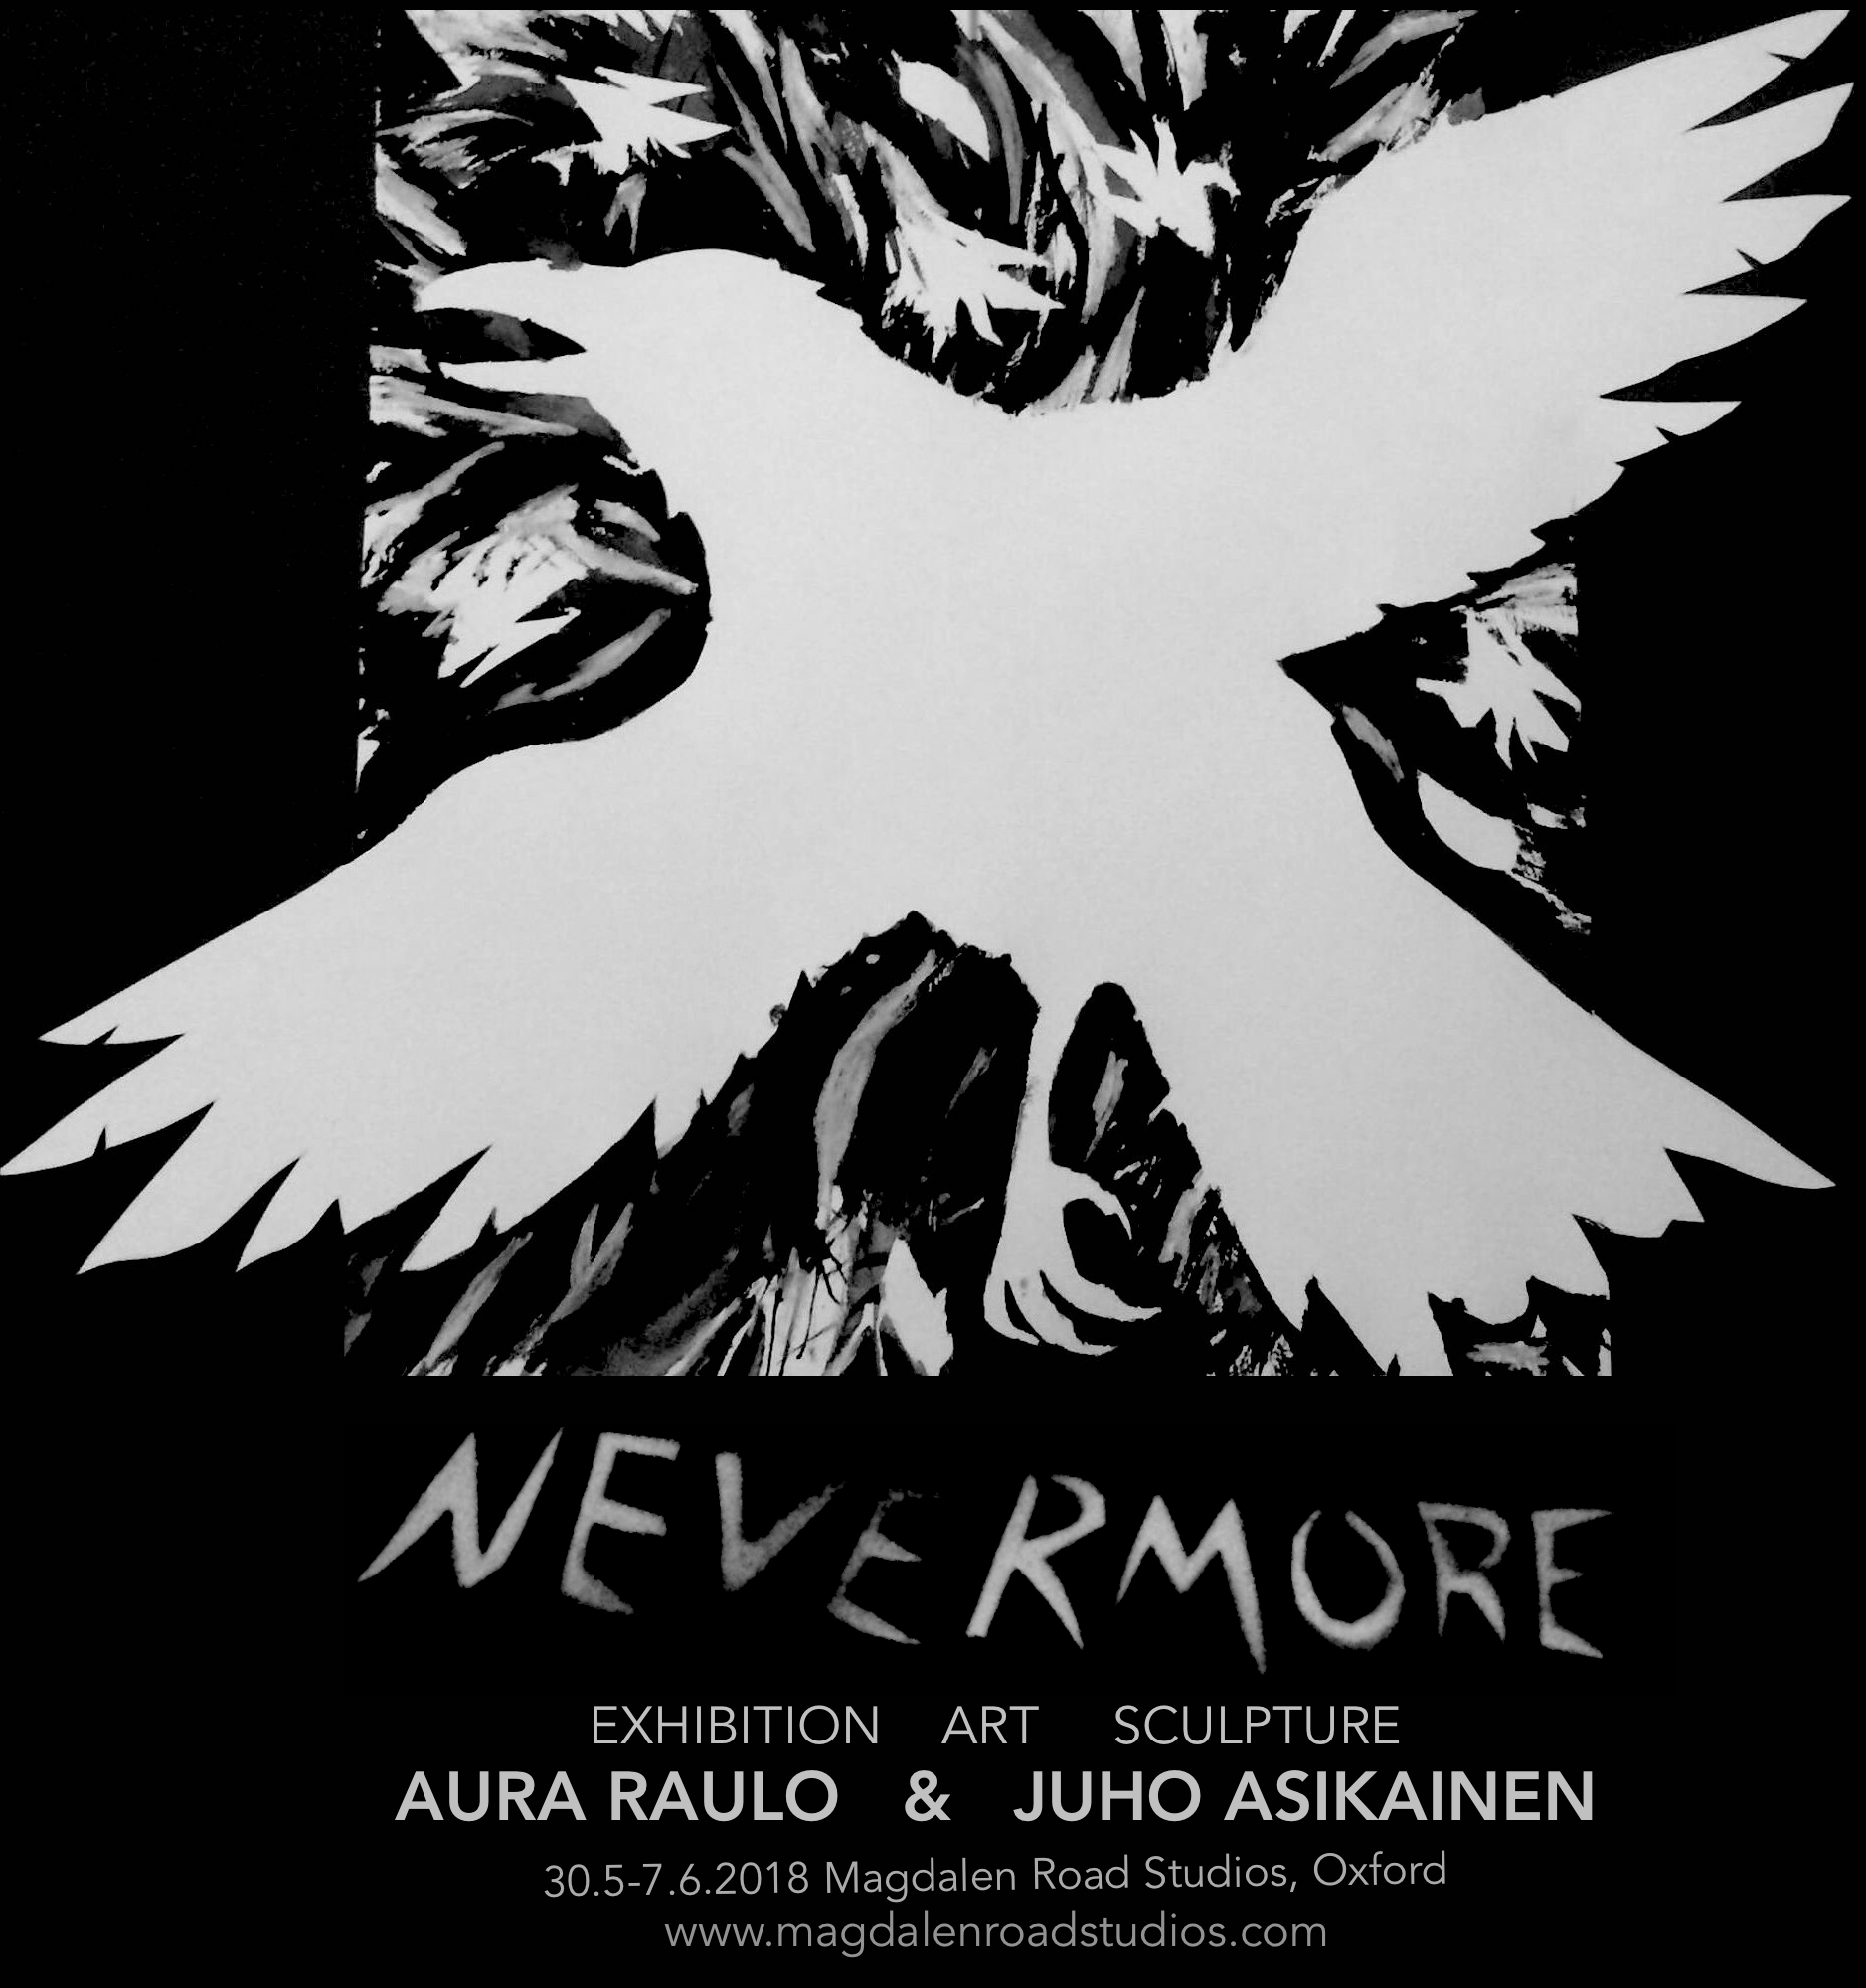 nevermore Exhibition at Magdalen Road Art studios